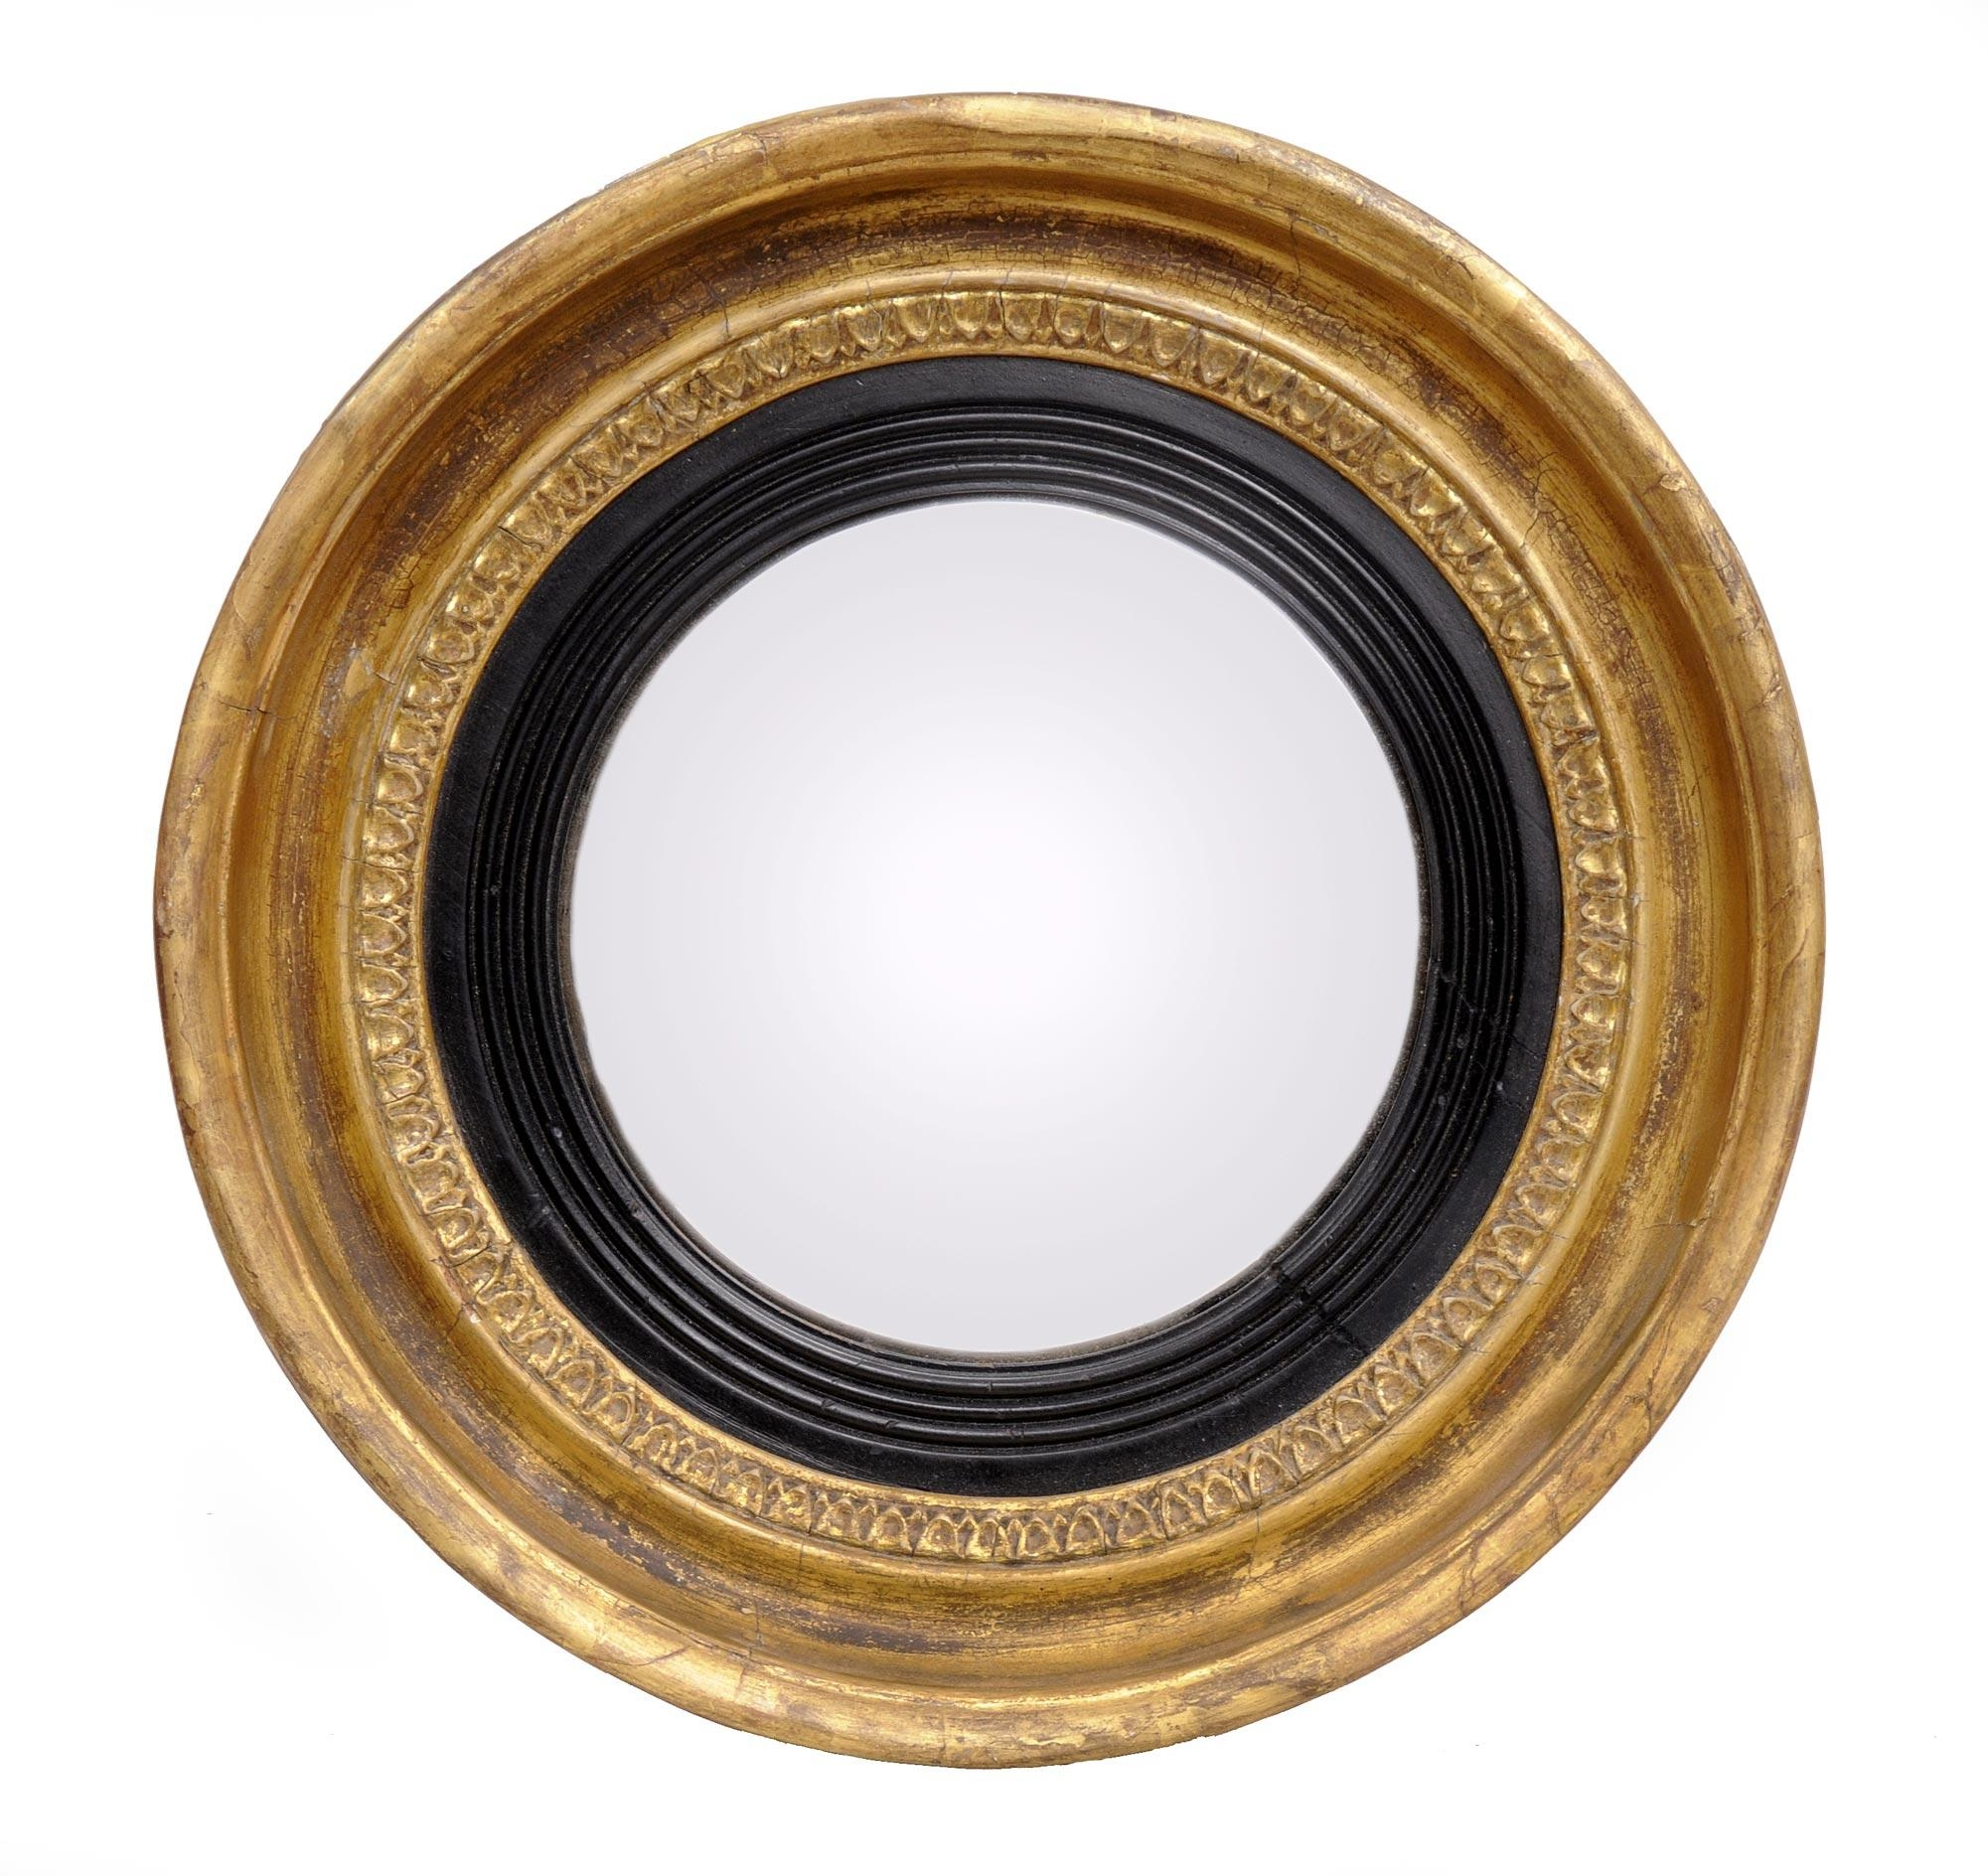 Small Convex Mirror For Creating Striking Wall Decoration | Homesfeed Pertaining To Small Convex Mirrors For Sale (Image 16 of 20)